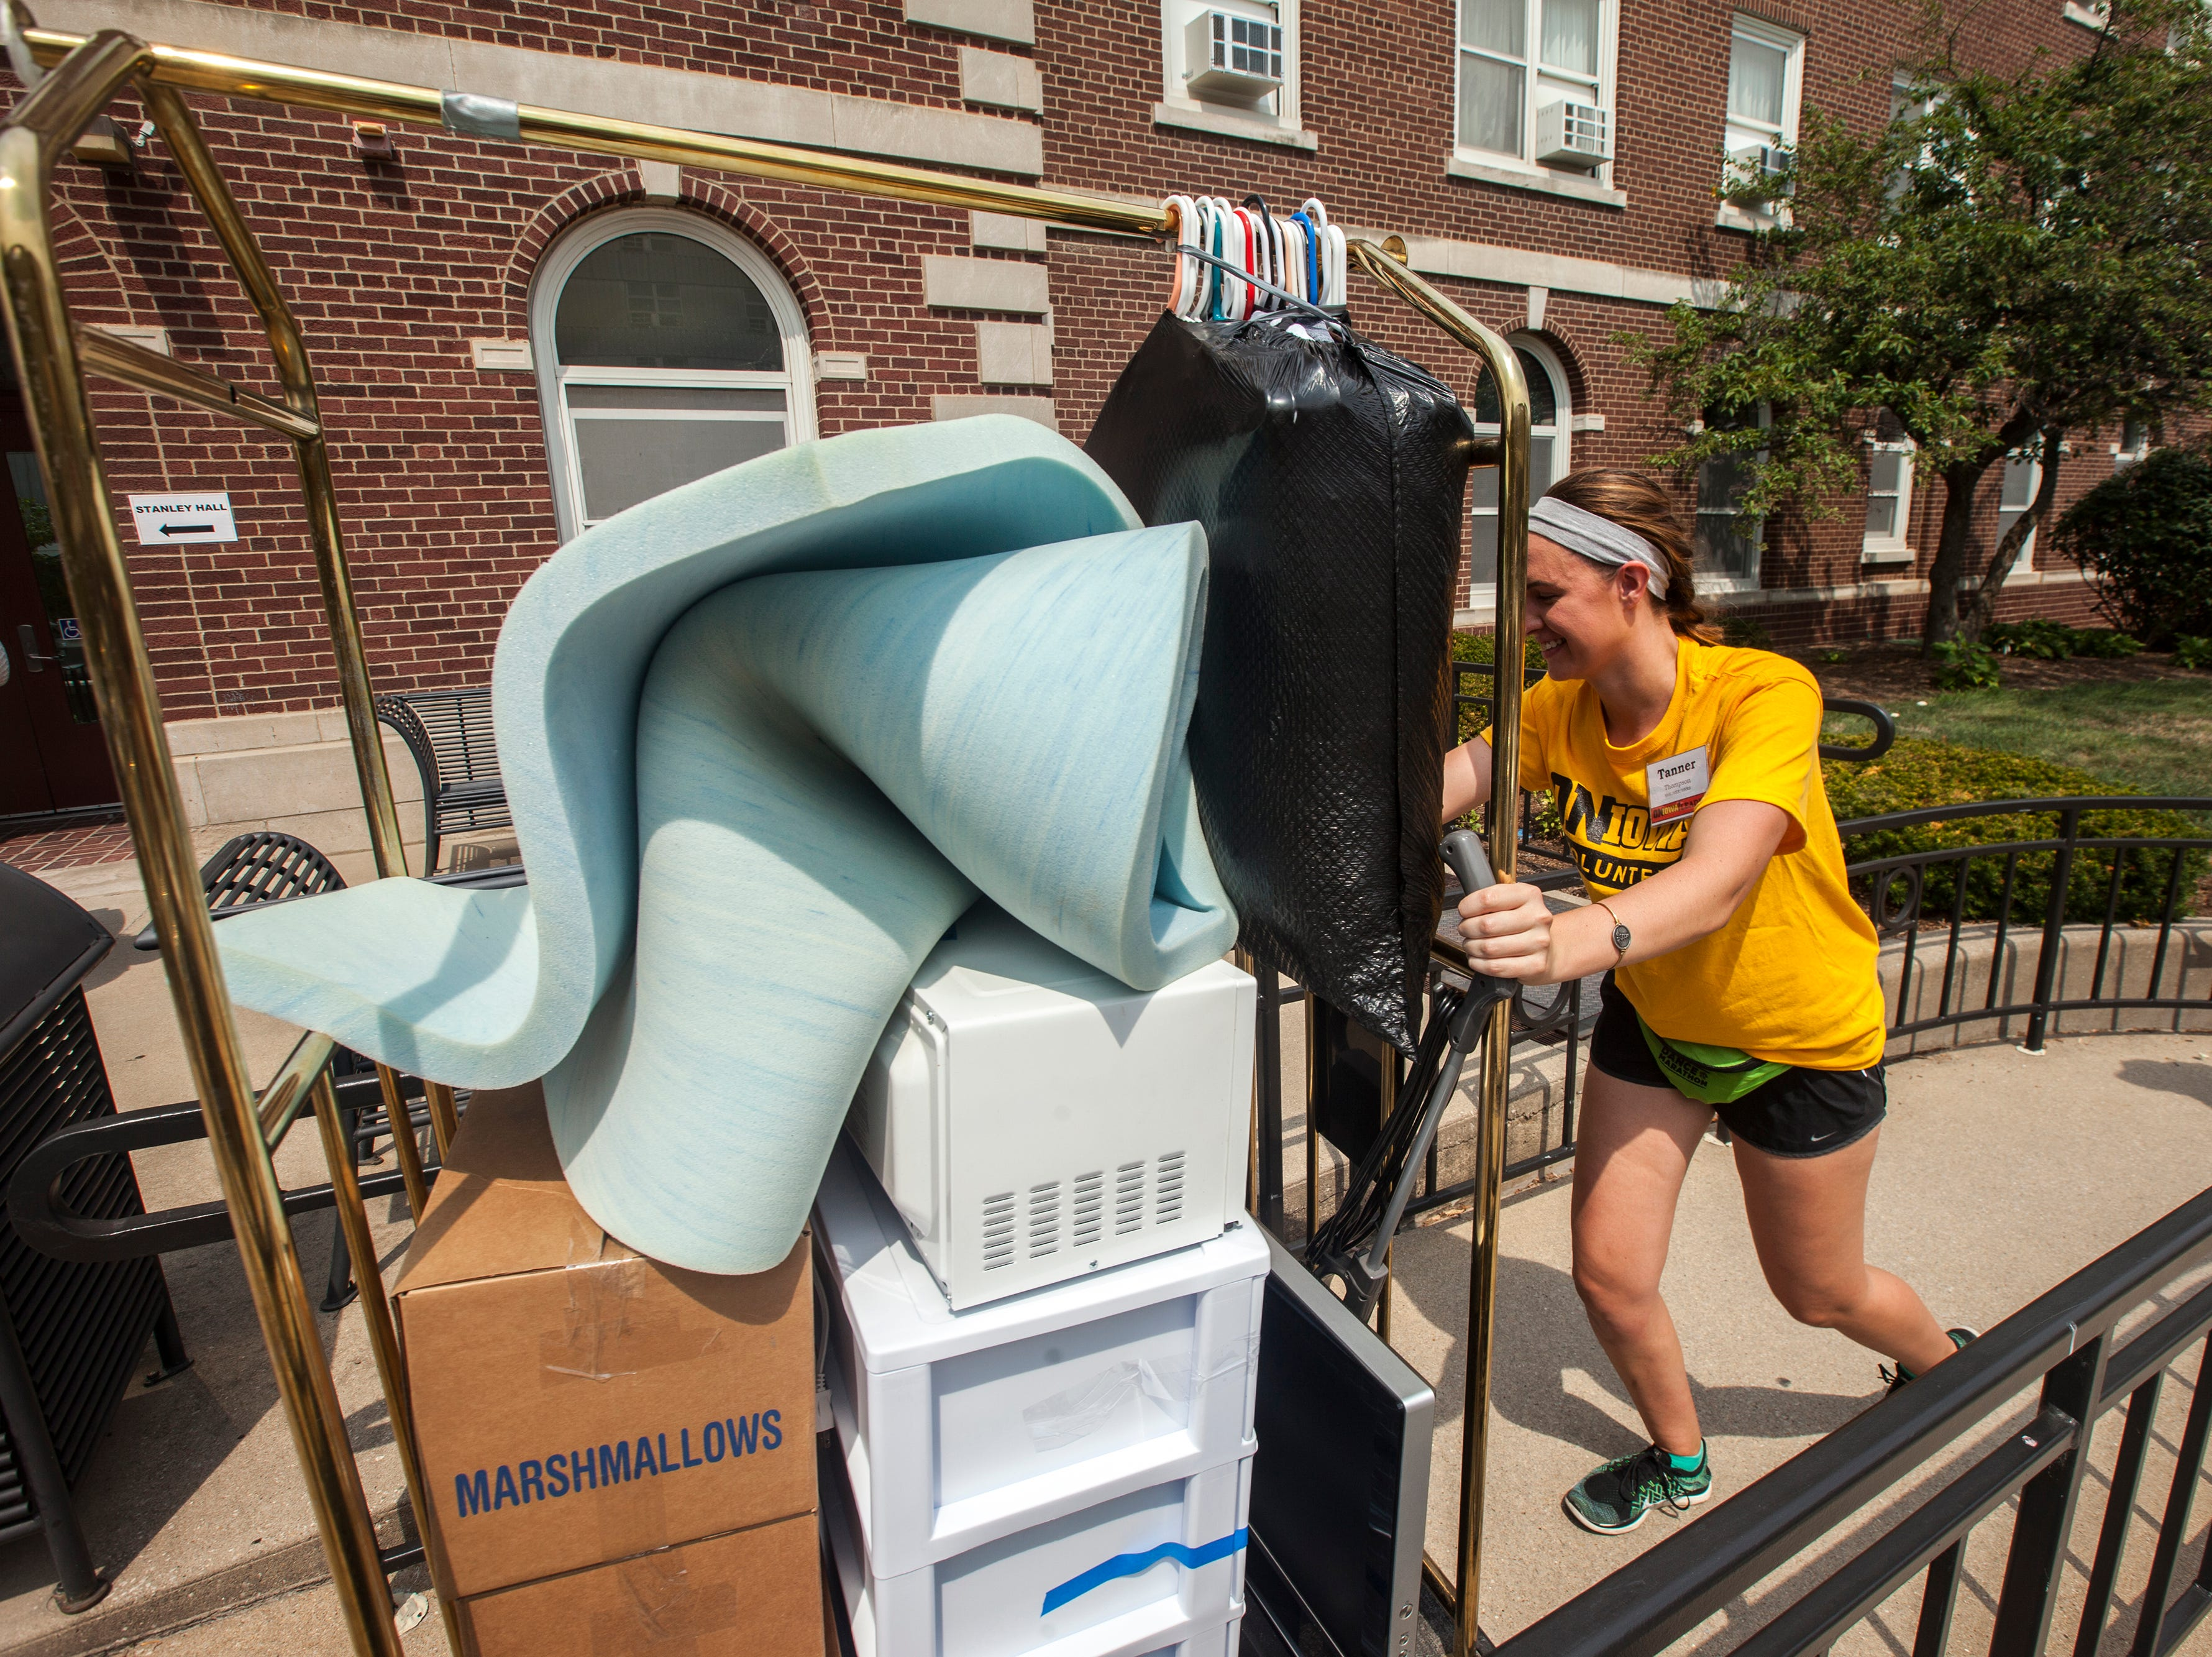 Tanner Thompson, of Bettendorf, Iowa pushes a cart into Currier Residence Hall during new student move-in on Tuesday, Aug. 14, 2018, on the University of Iowa campus in Iowa City. Thompson is a sophomore studying nursing and Spanish.